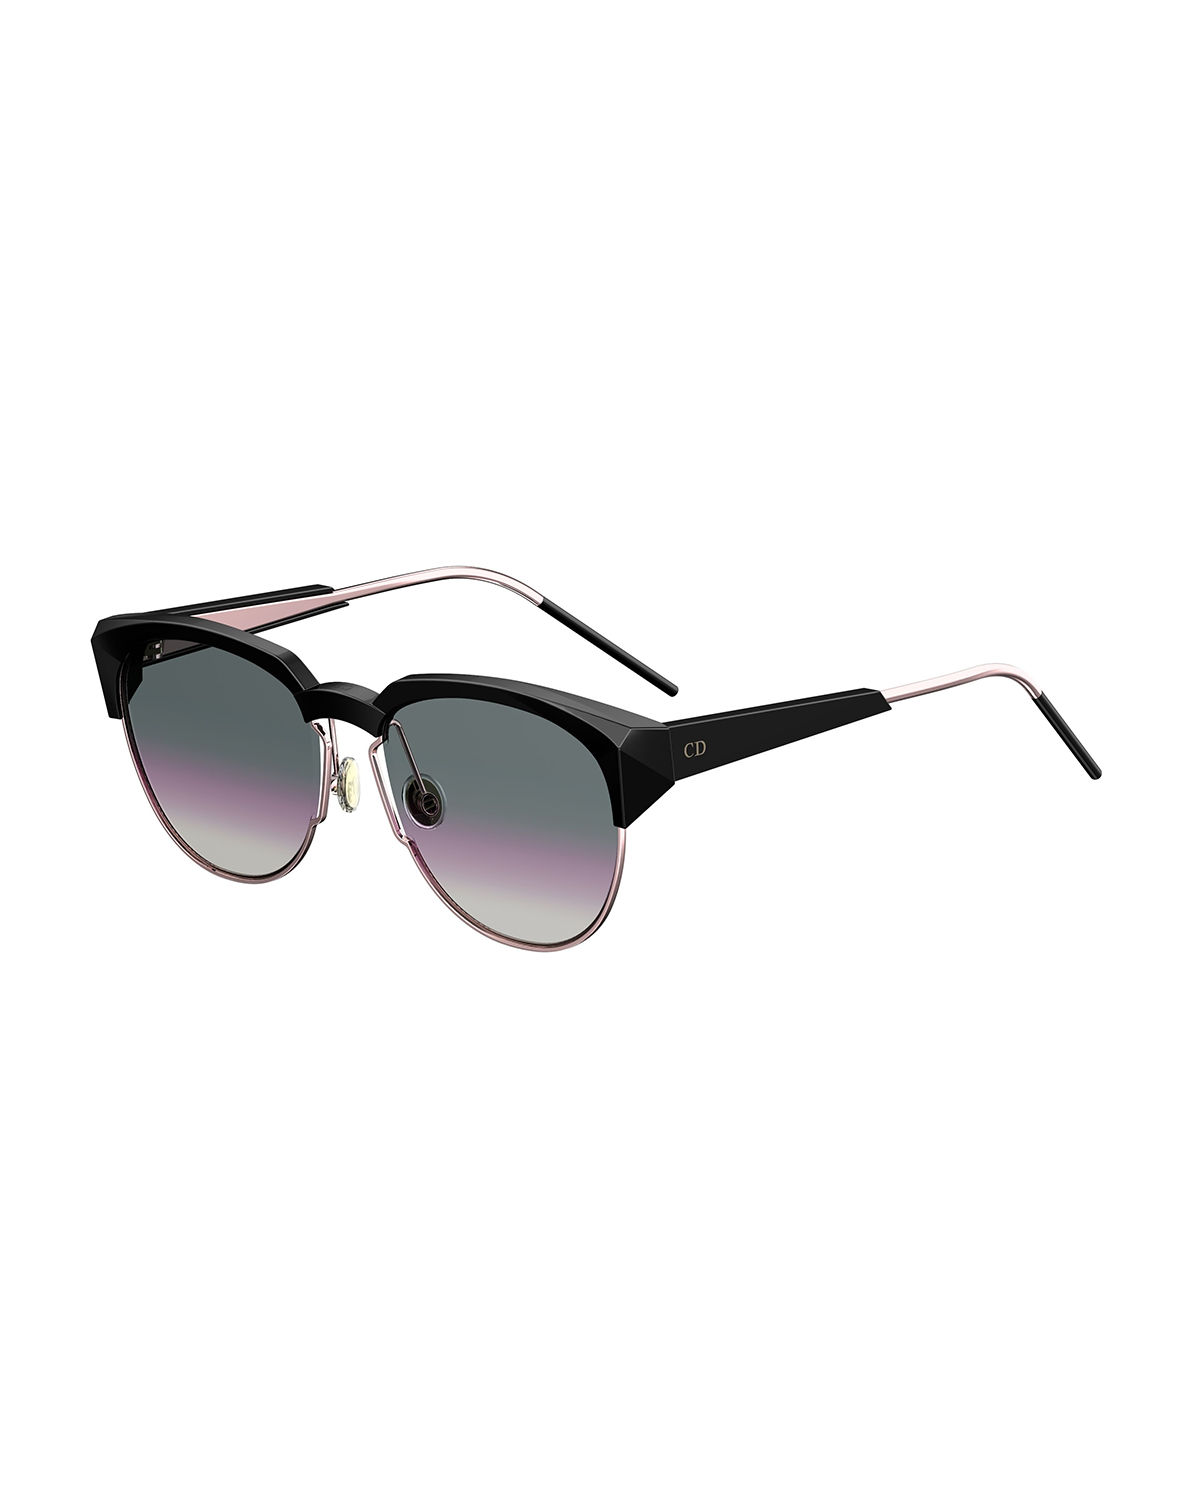 d12200a7a67 Dior Spectral 8 Semi-Rimless Sunglasses In Black   Purple Gradient ...